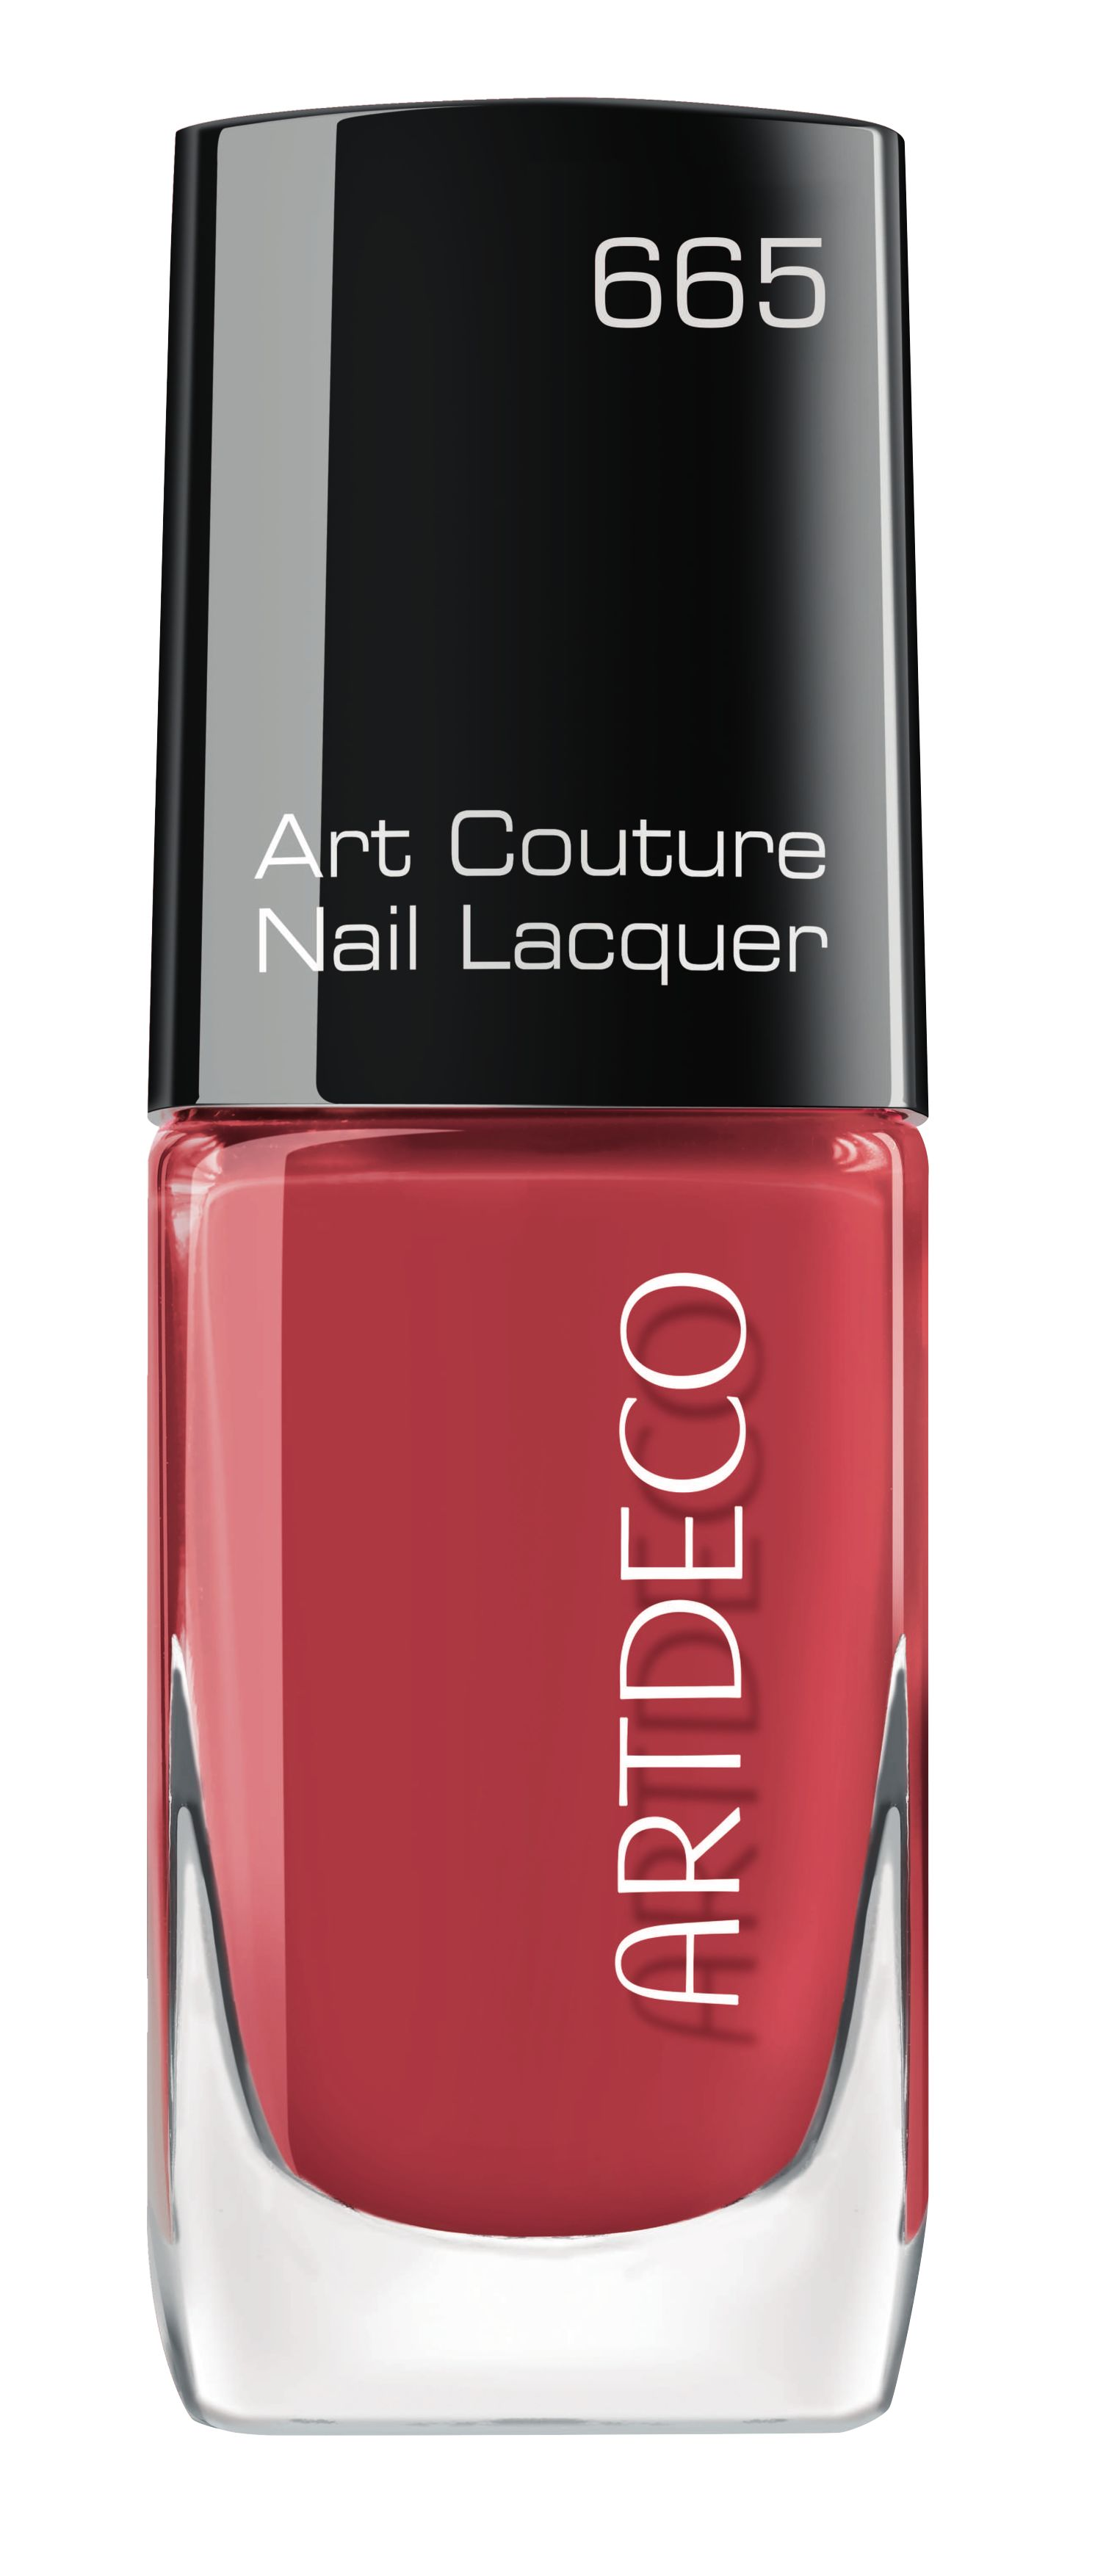 Art Couture Nail Lacquer #665 brick red - Make-up  Bestel nu online bij  Beauty Doctor